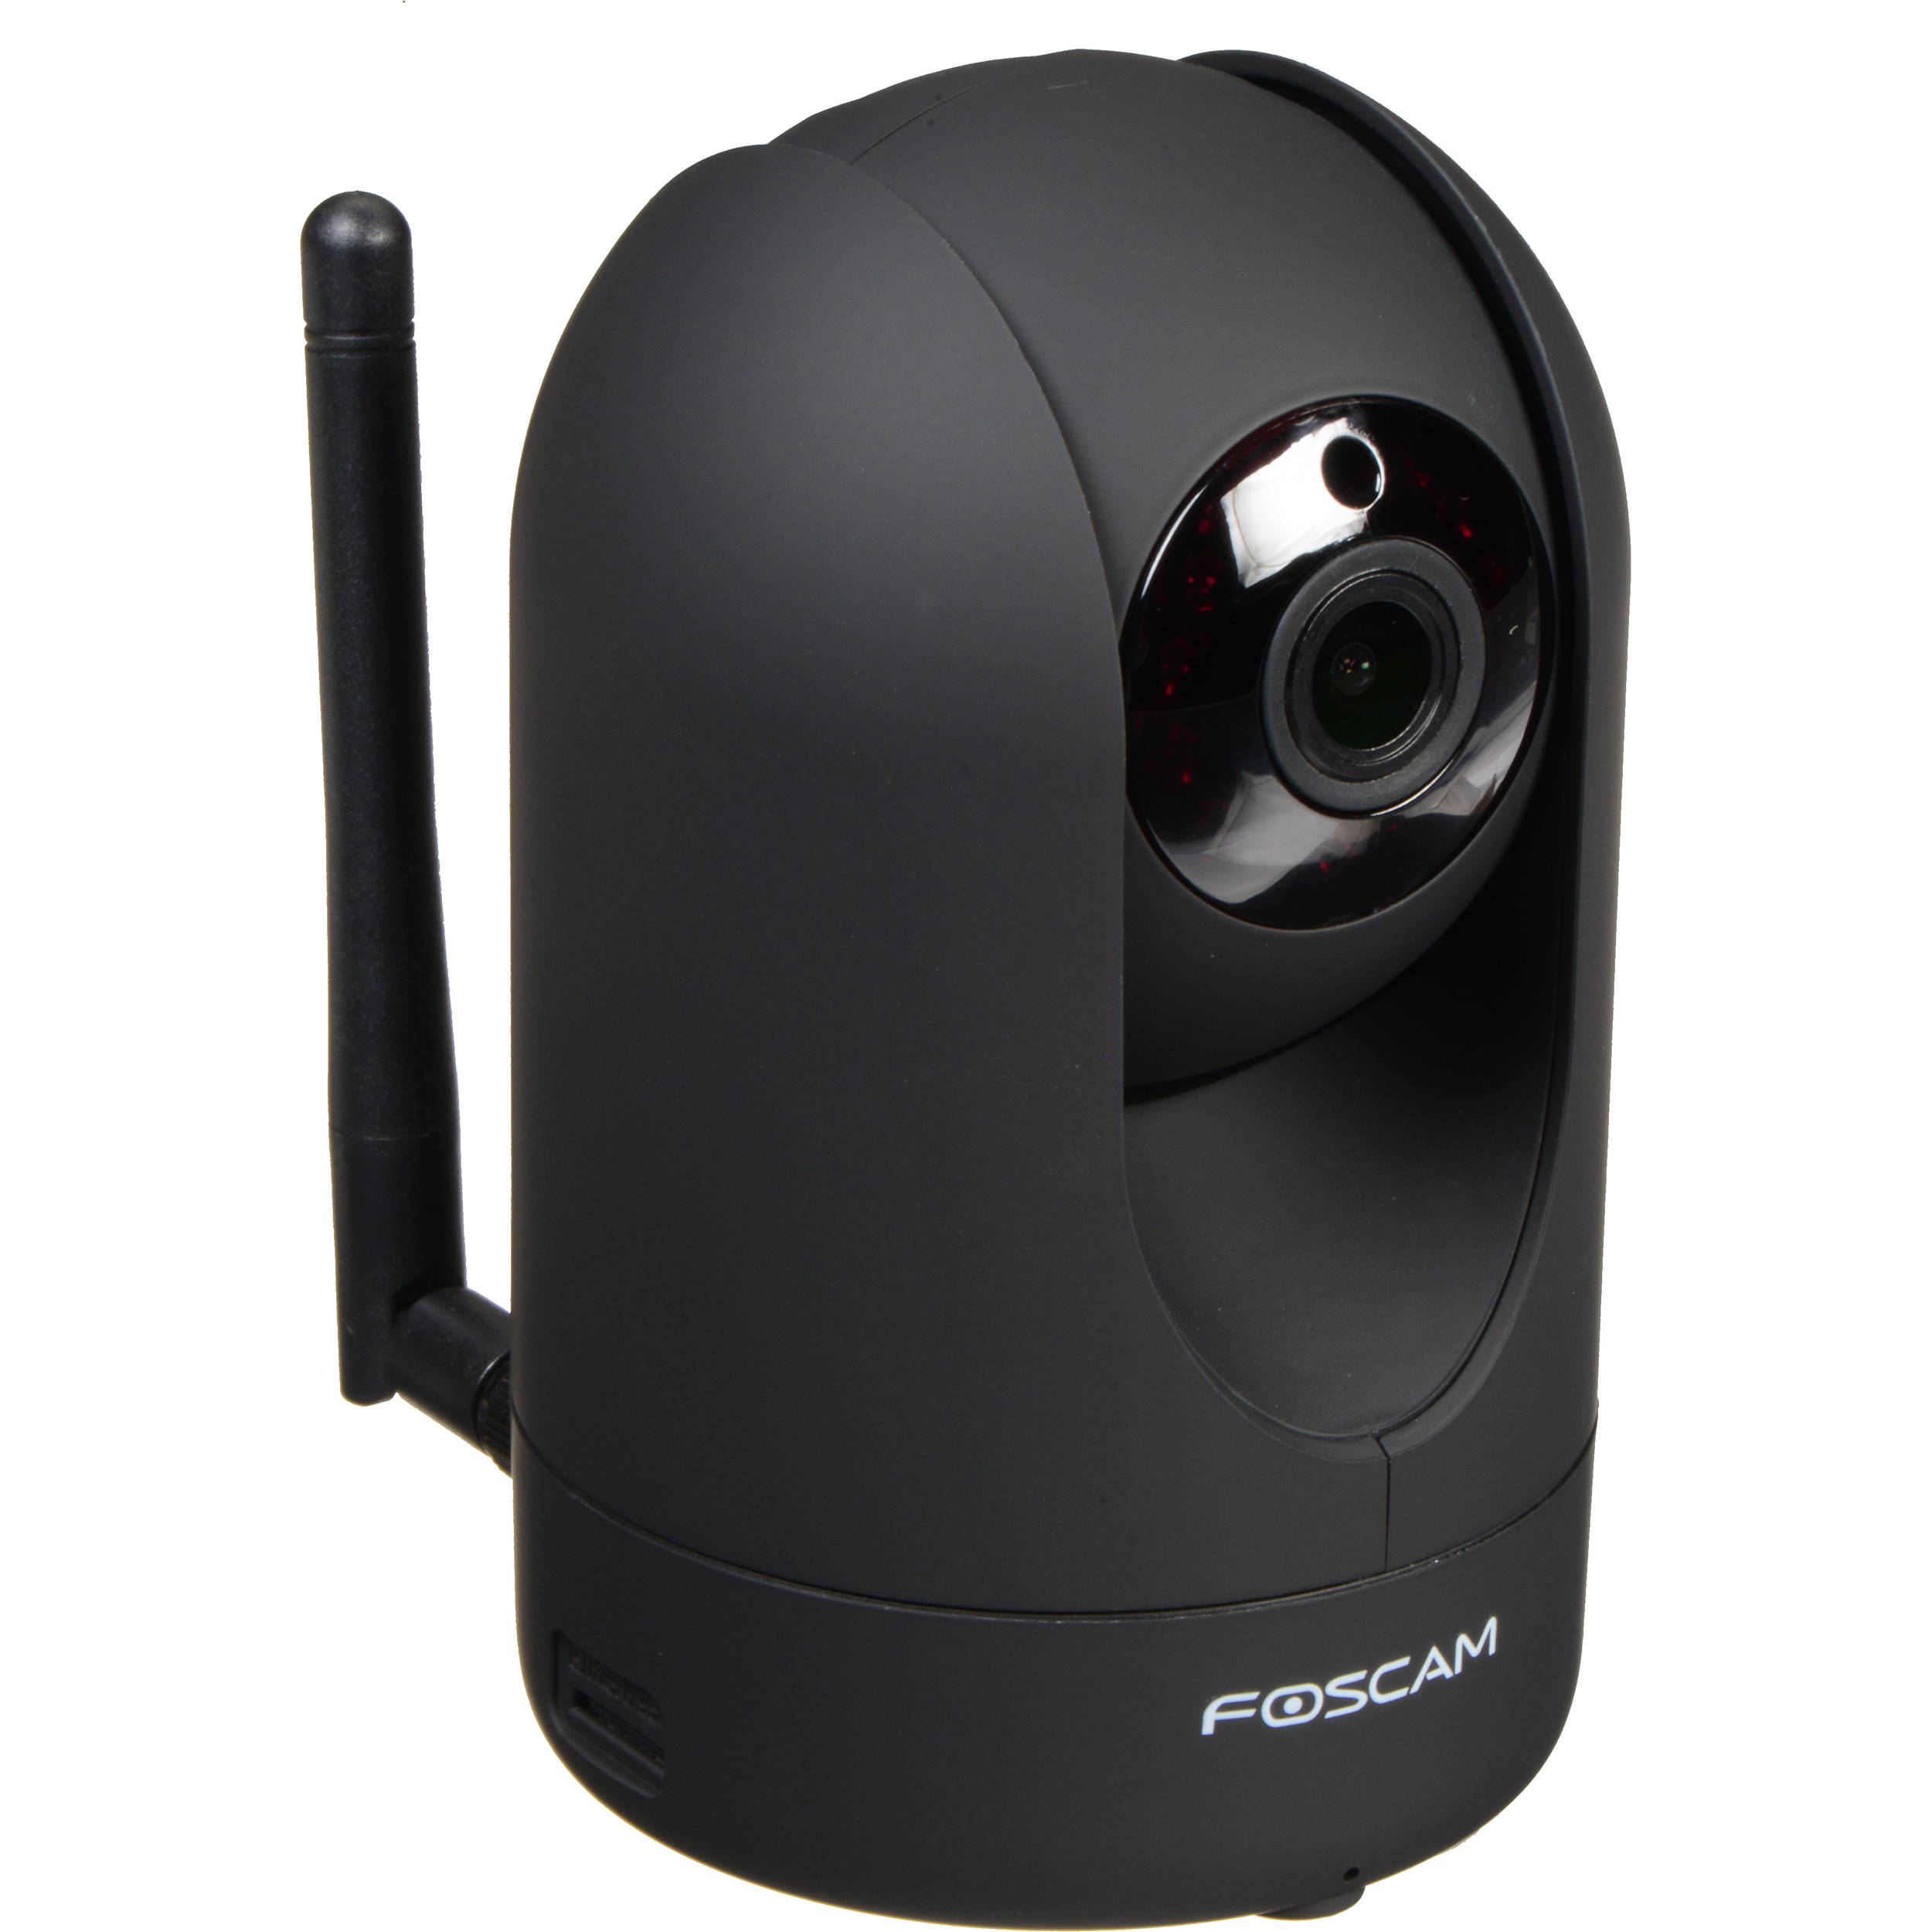 Foscam R2 1080p Wireless Camera with Night Vision (Black) R2-B